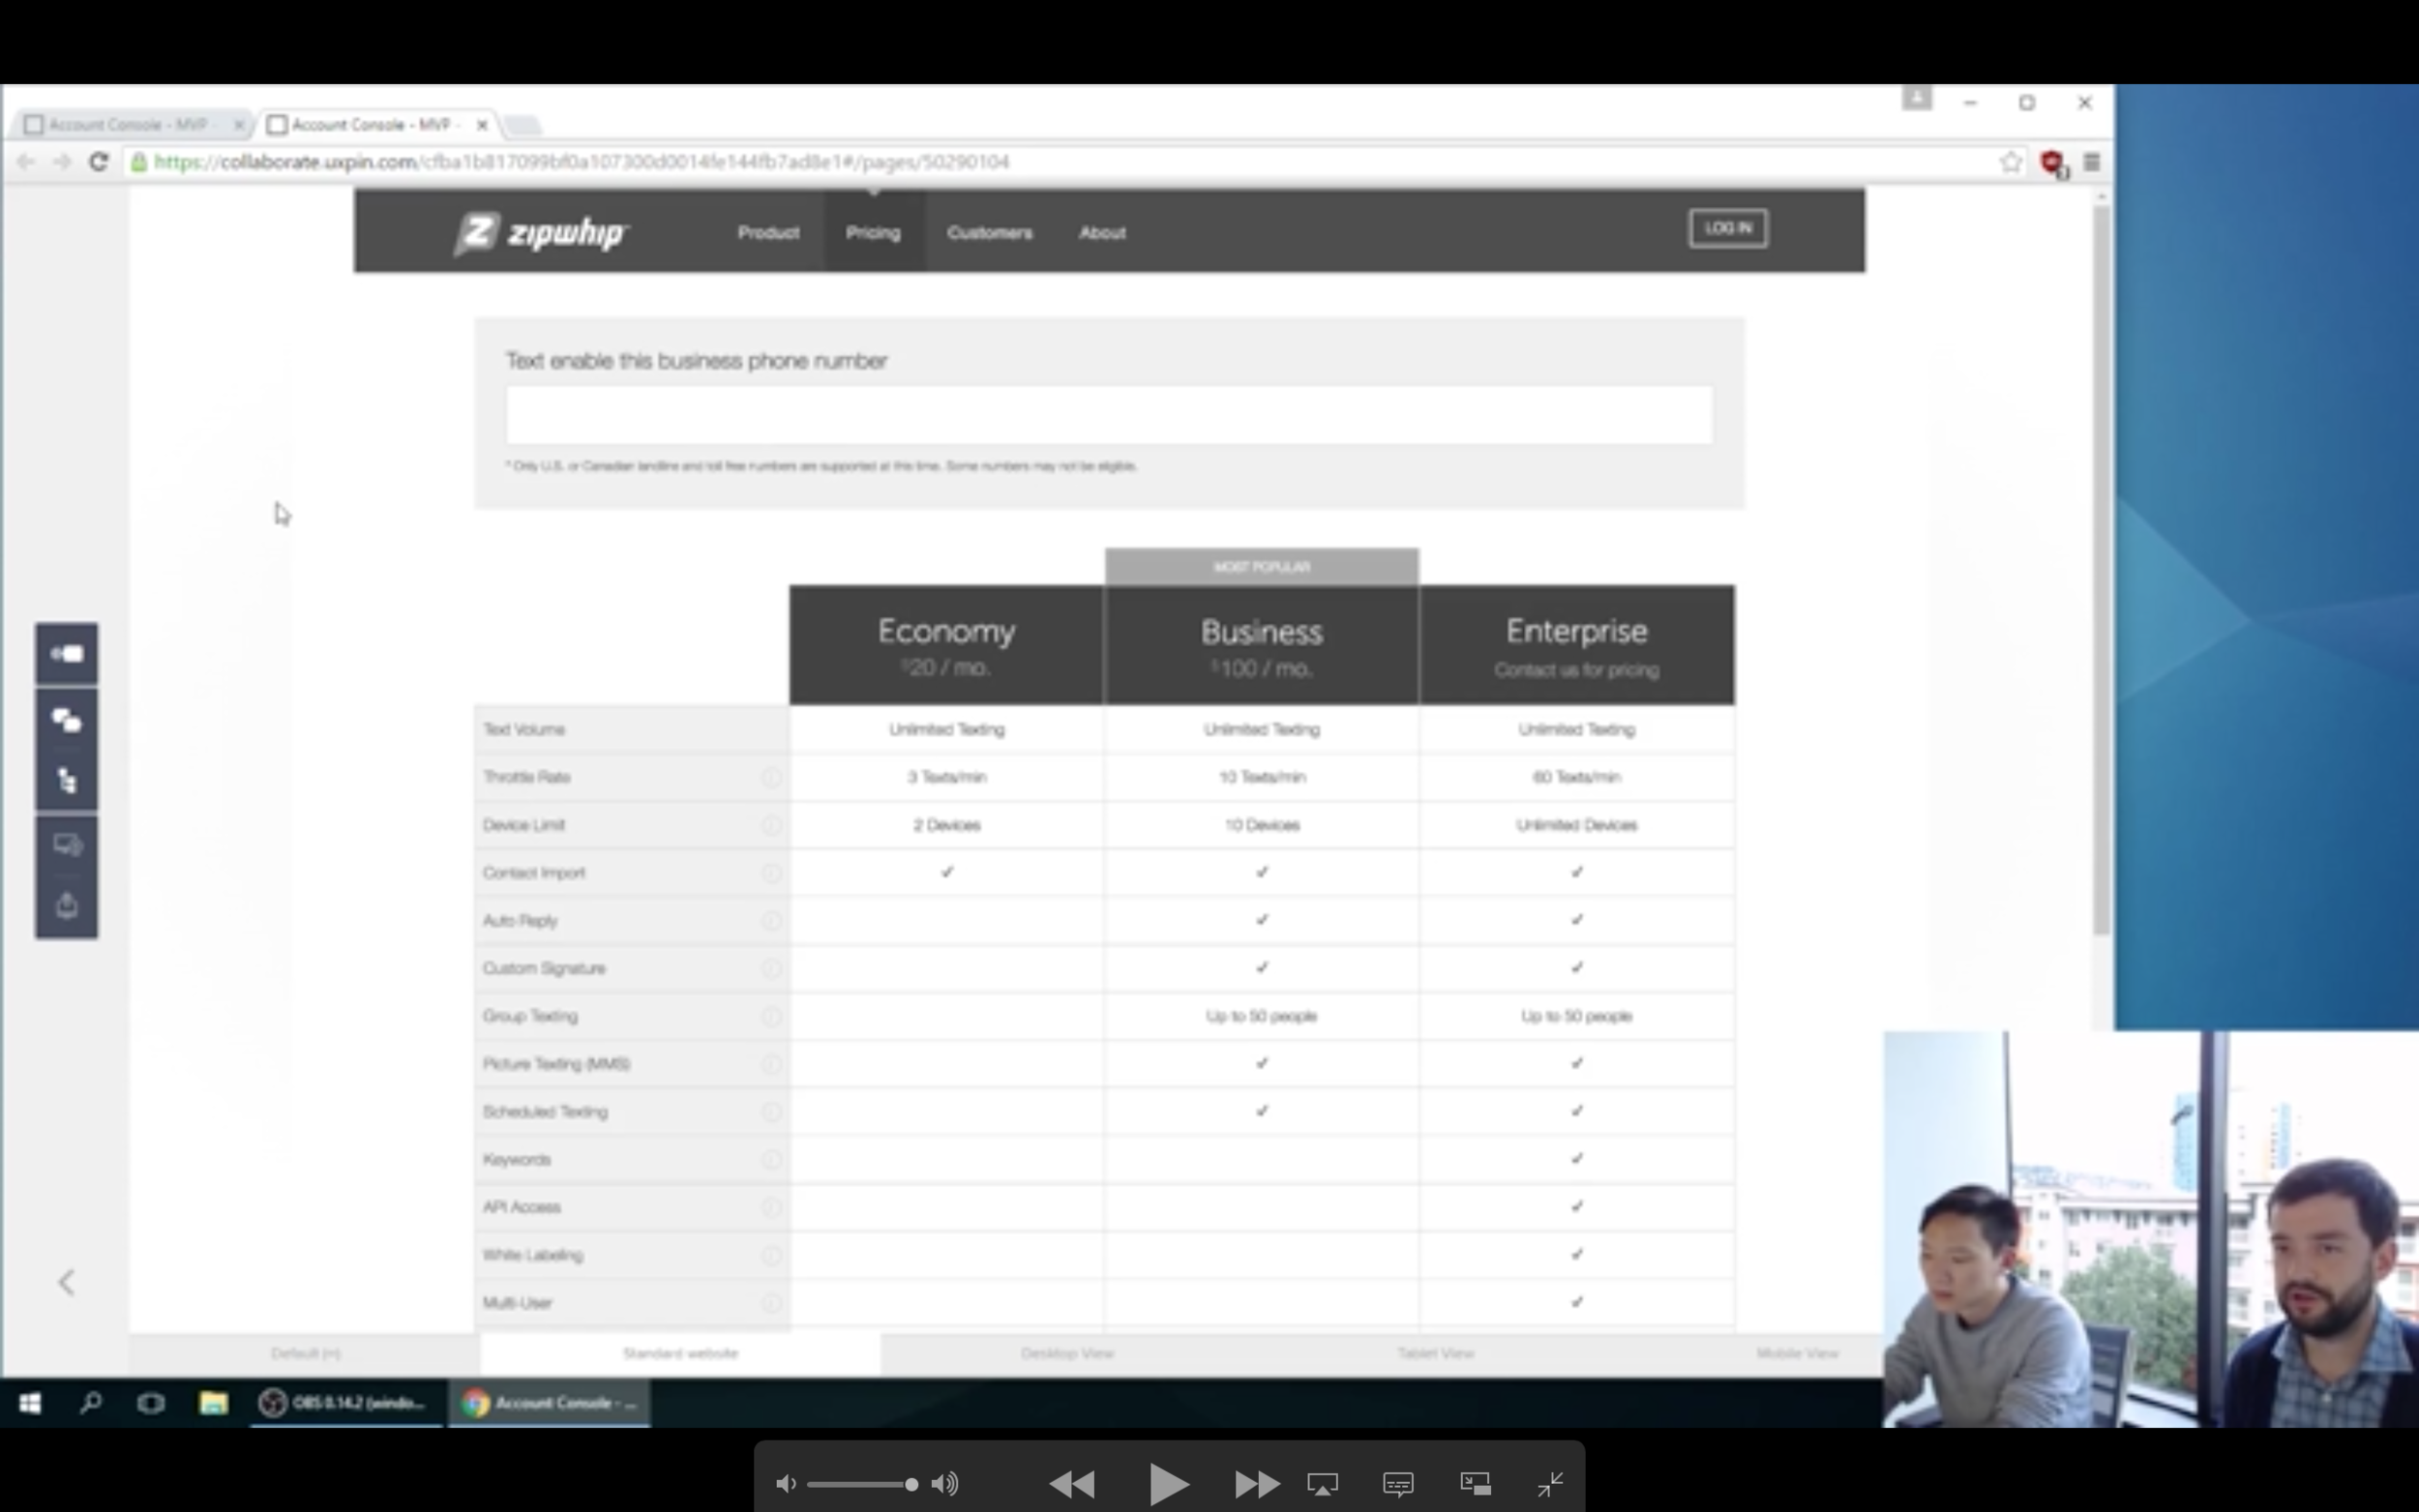 Screenshot of Bradley (left) facilitating an in-person, moderated usability test session with Tom (right).